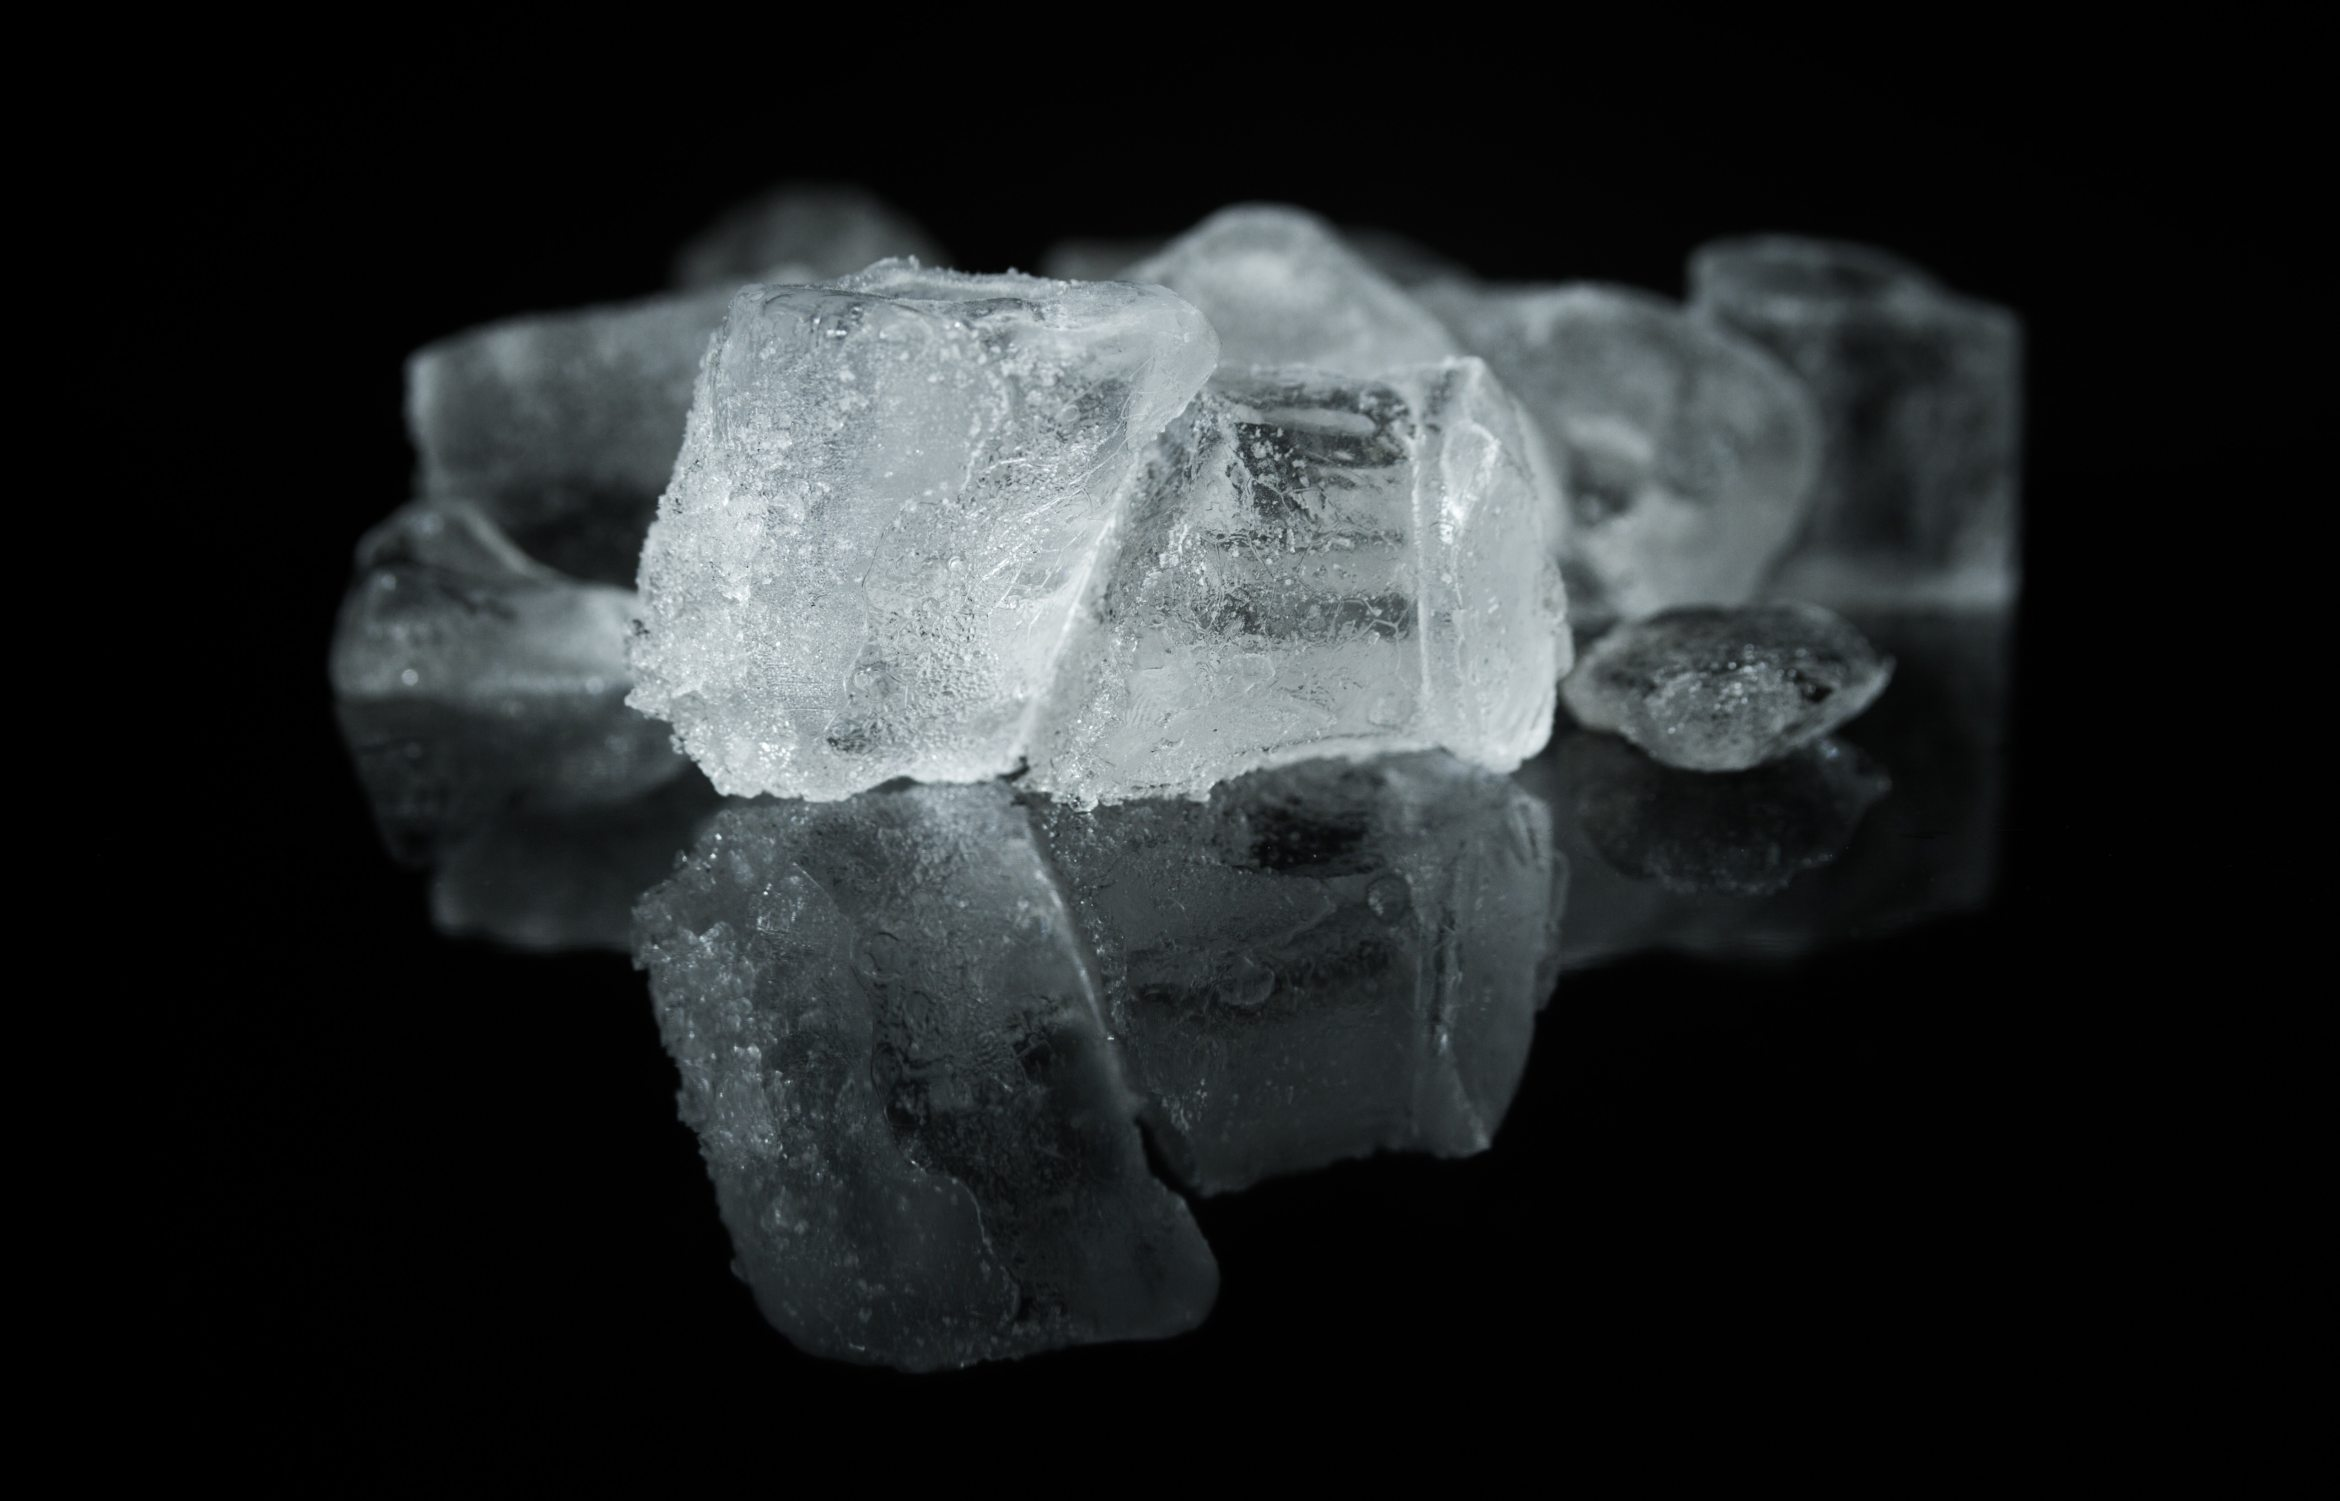 clear-close-up-cold-434259